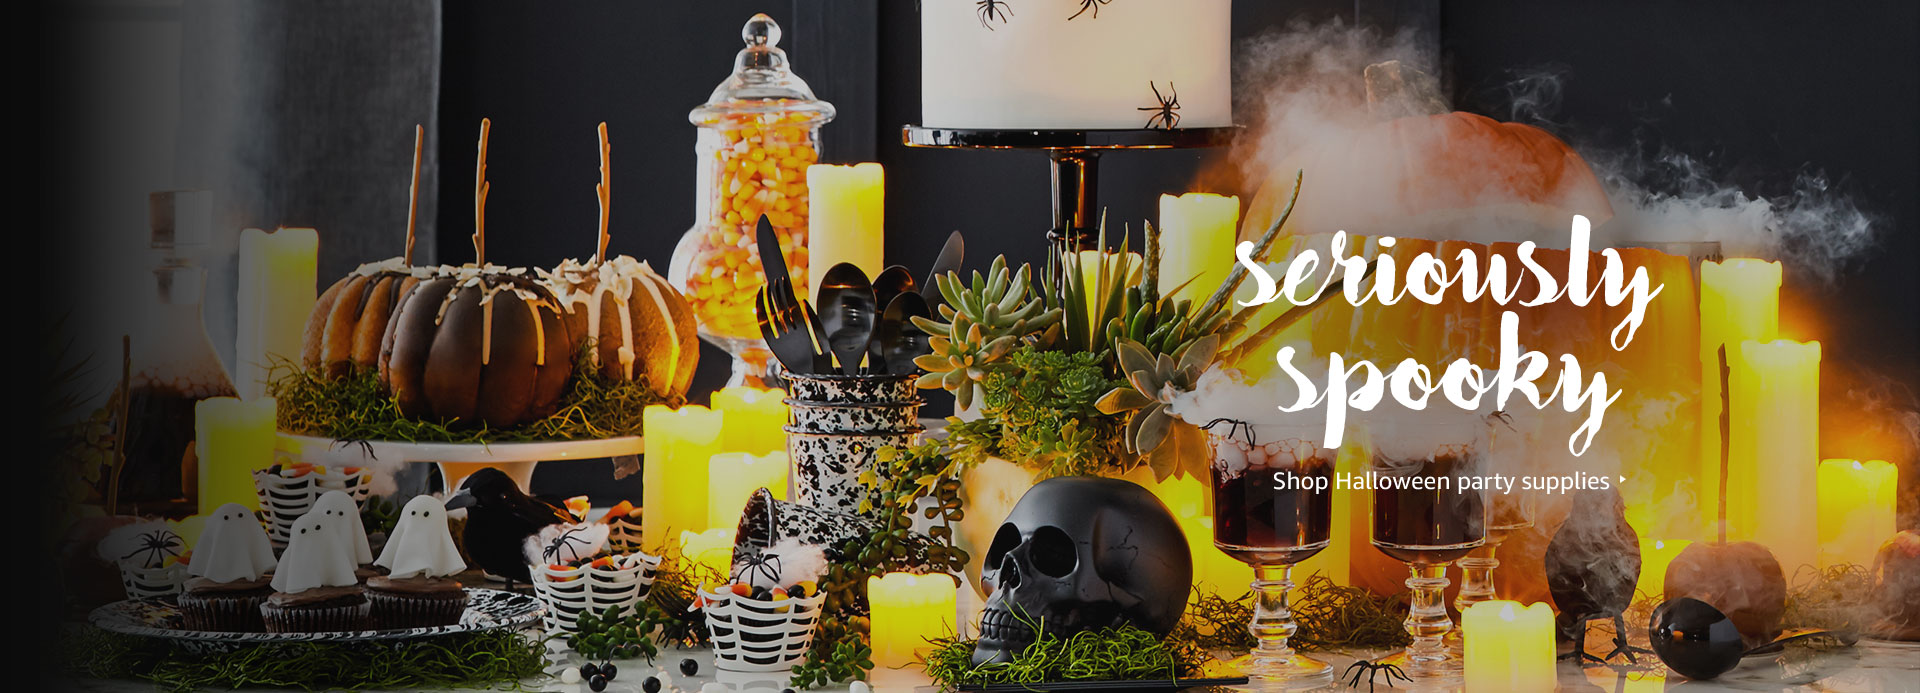 Halloween Party Supplies, Event & Party